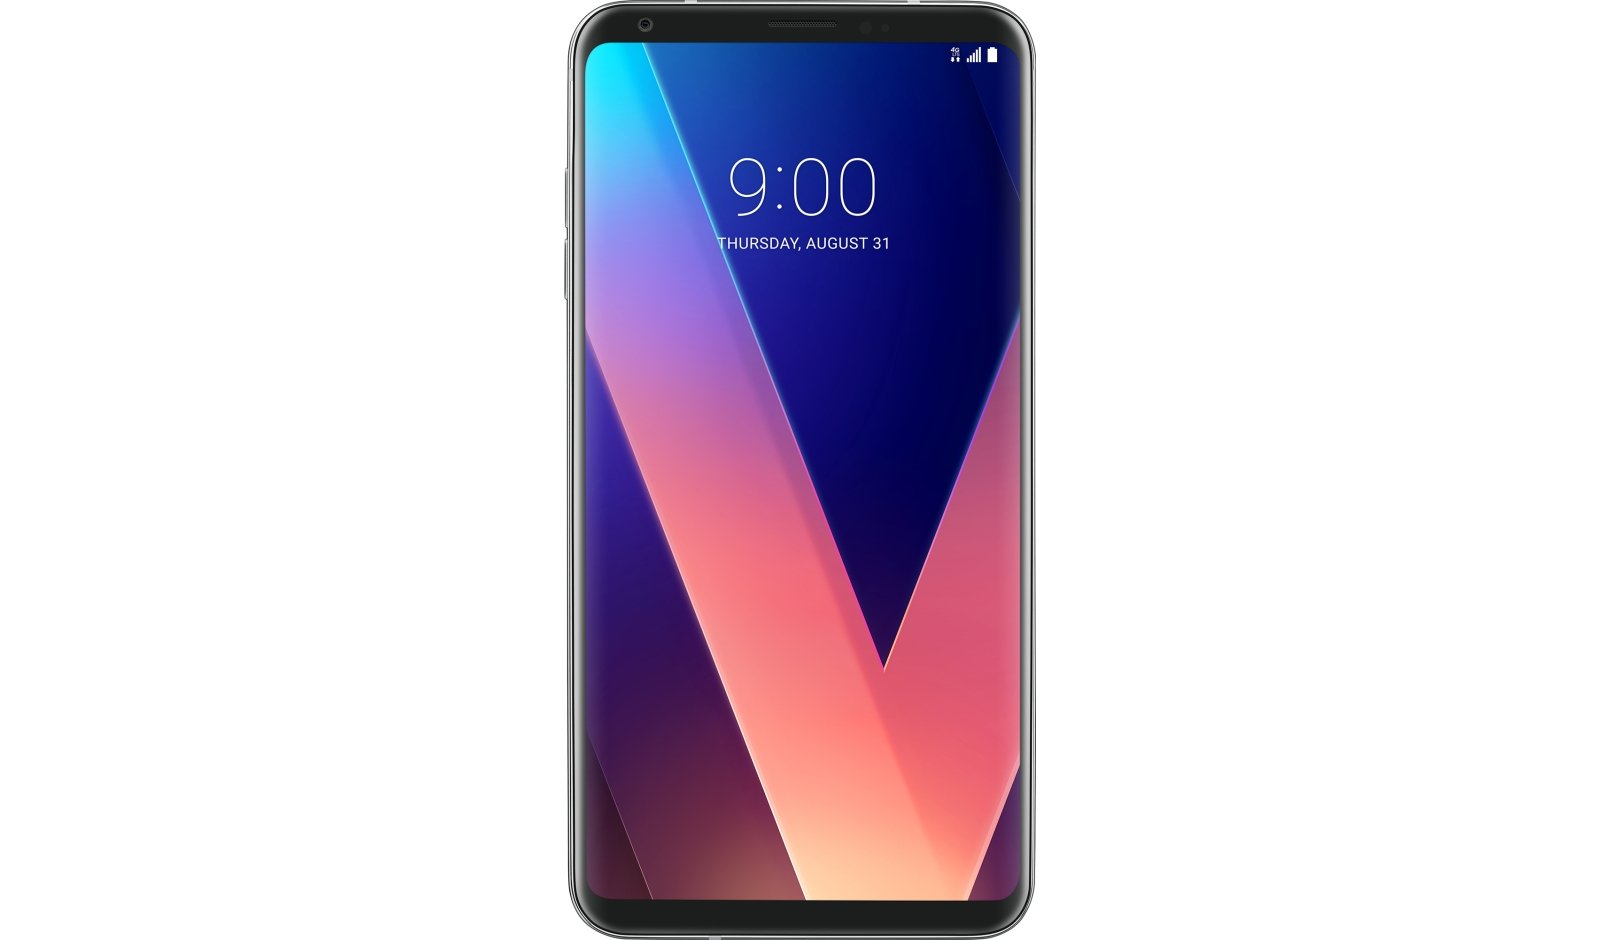 LG V30 - H932-64GB Dual Camera 4G LTE - Silver - T-Mobile (Renewed) by LG